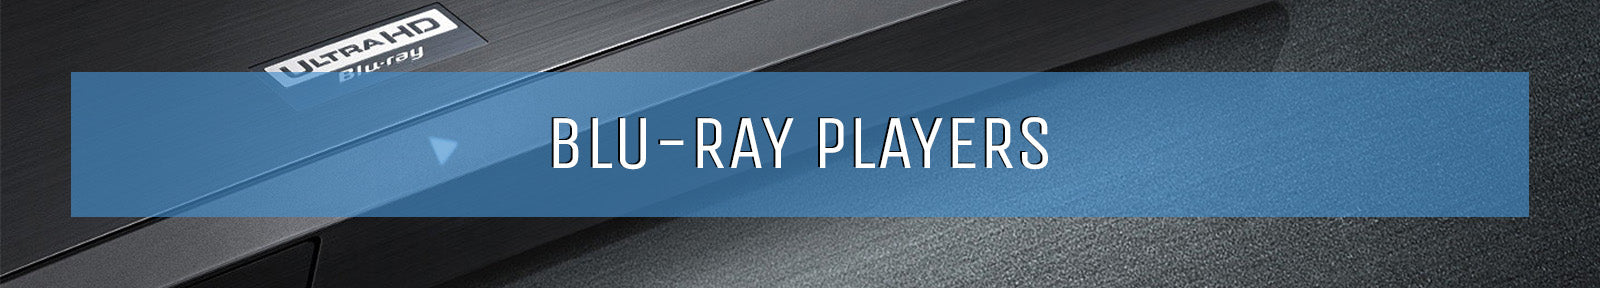 Blu-Ray Players for sale - best brands